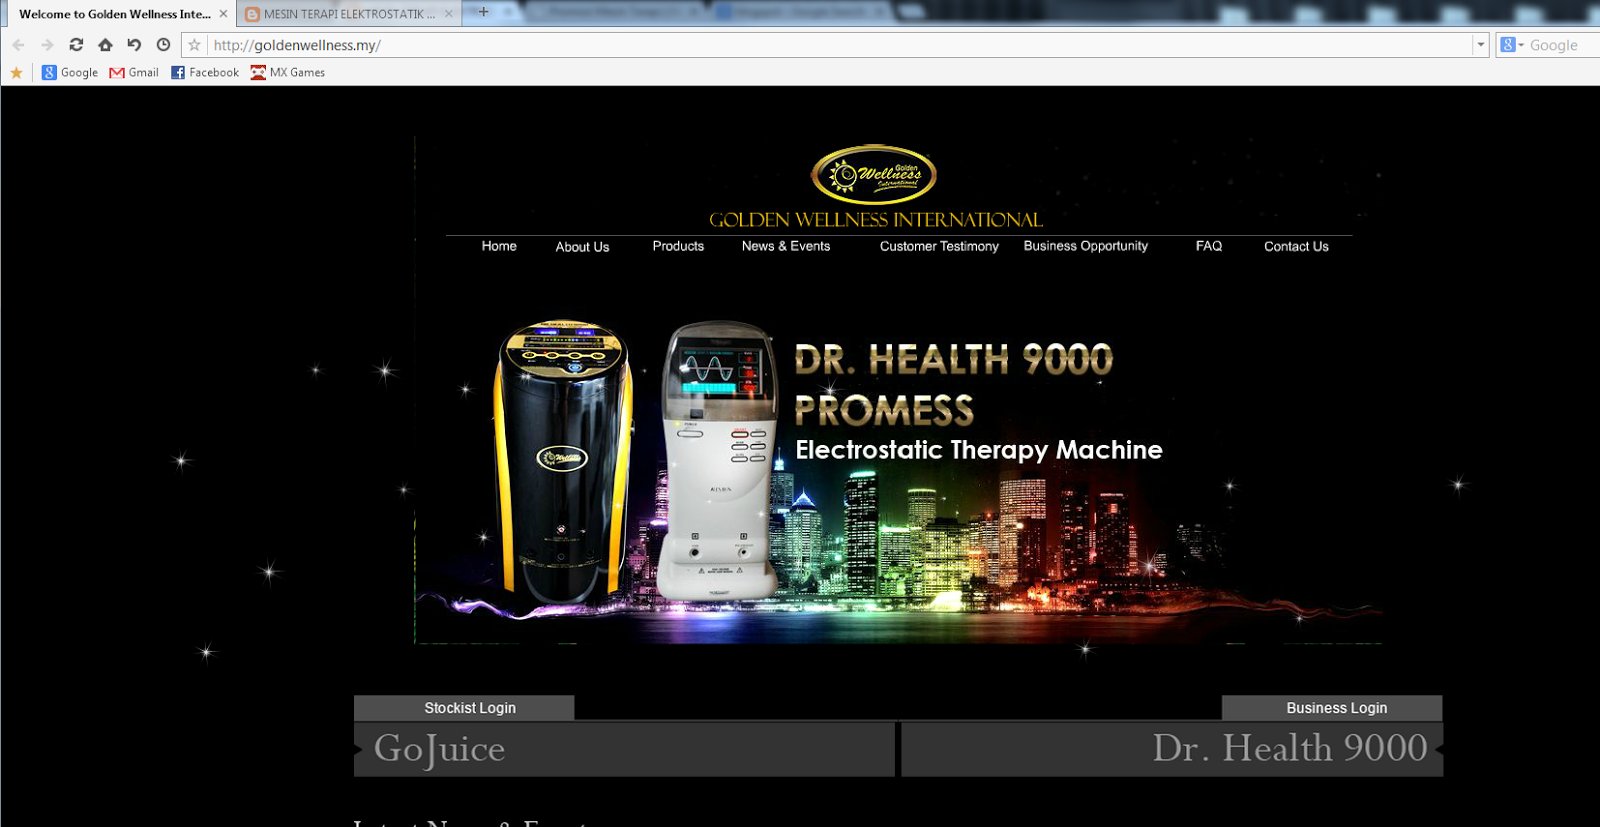 www.goldenwellness.my